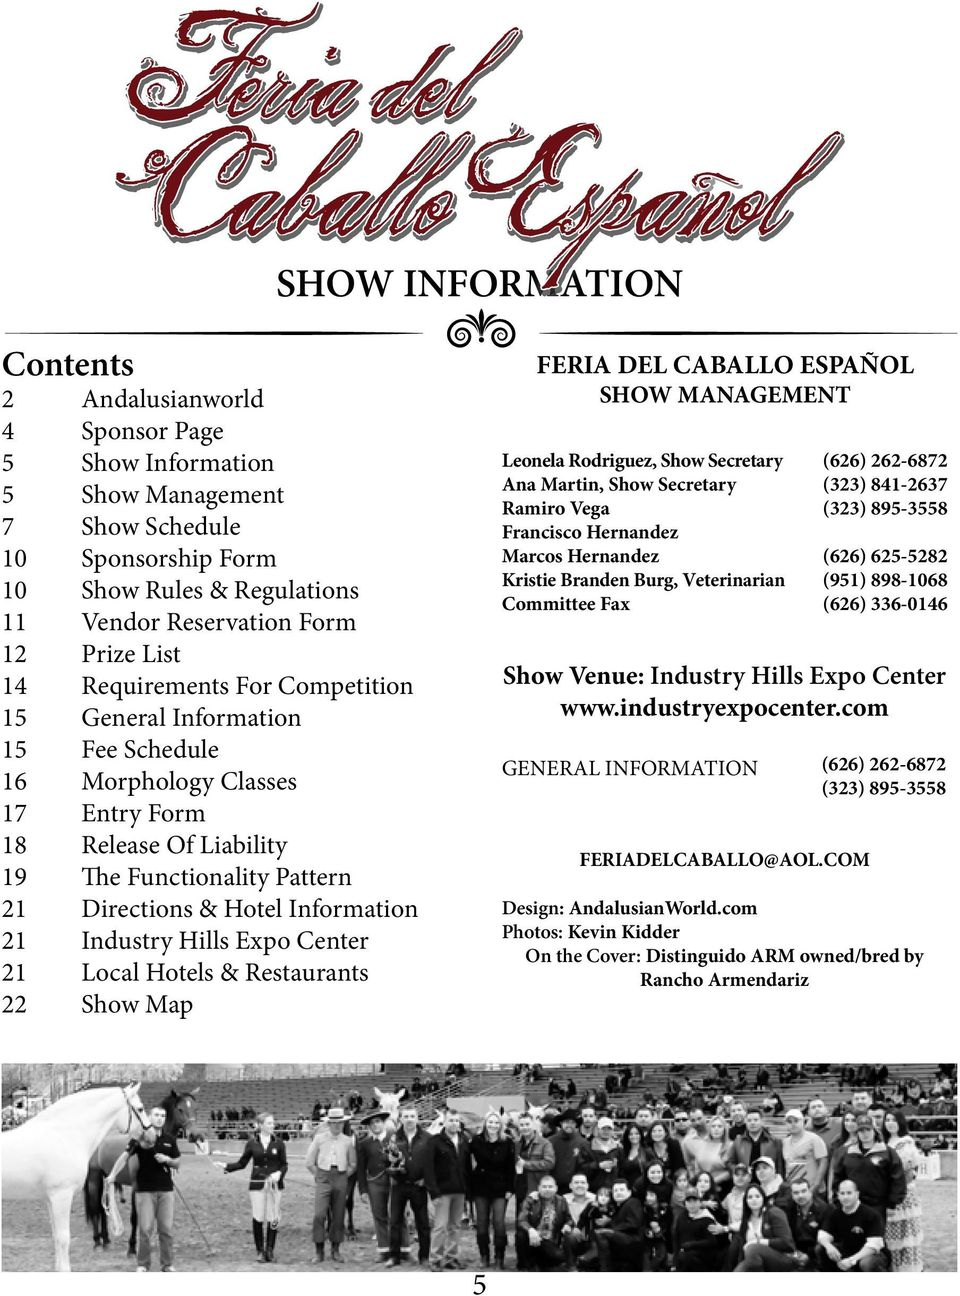 21 Industry Hills Expo Center 21 Local Hotels & Restaurants 22 Show Map FERIA DEL CABALLO ESPAÑOL SHOW MANAGEMENT Leonela Rodriguez, Show Secretary Ana Martin, Show Secretary Ramiro Vega Francisco